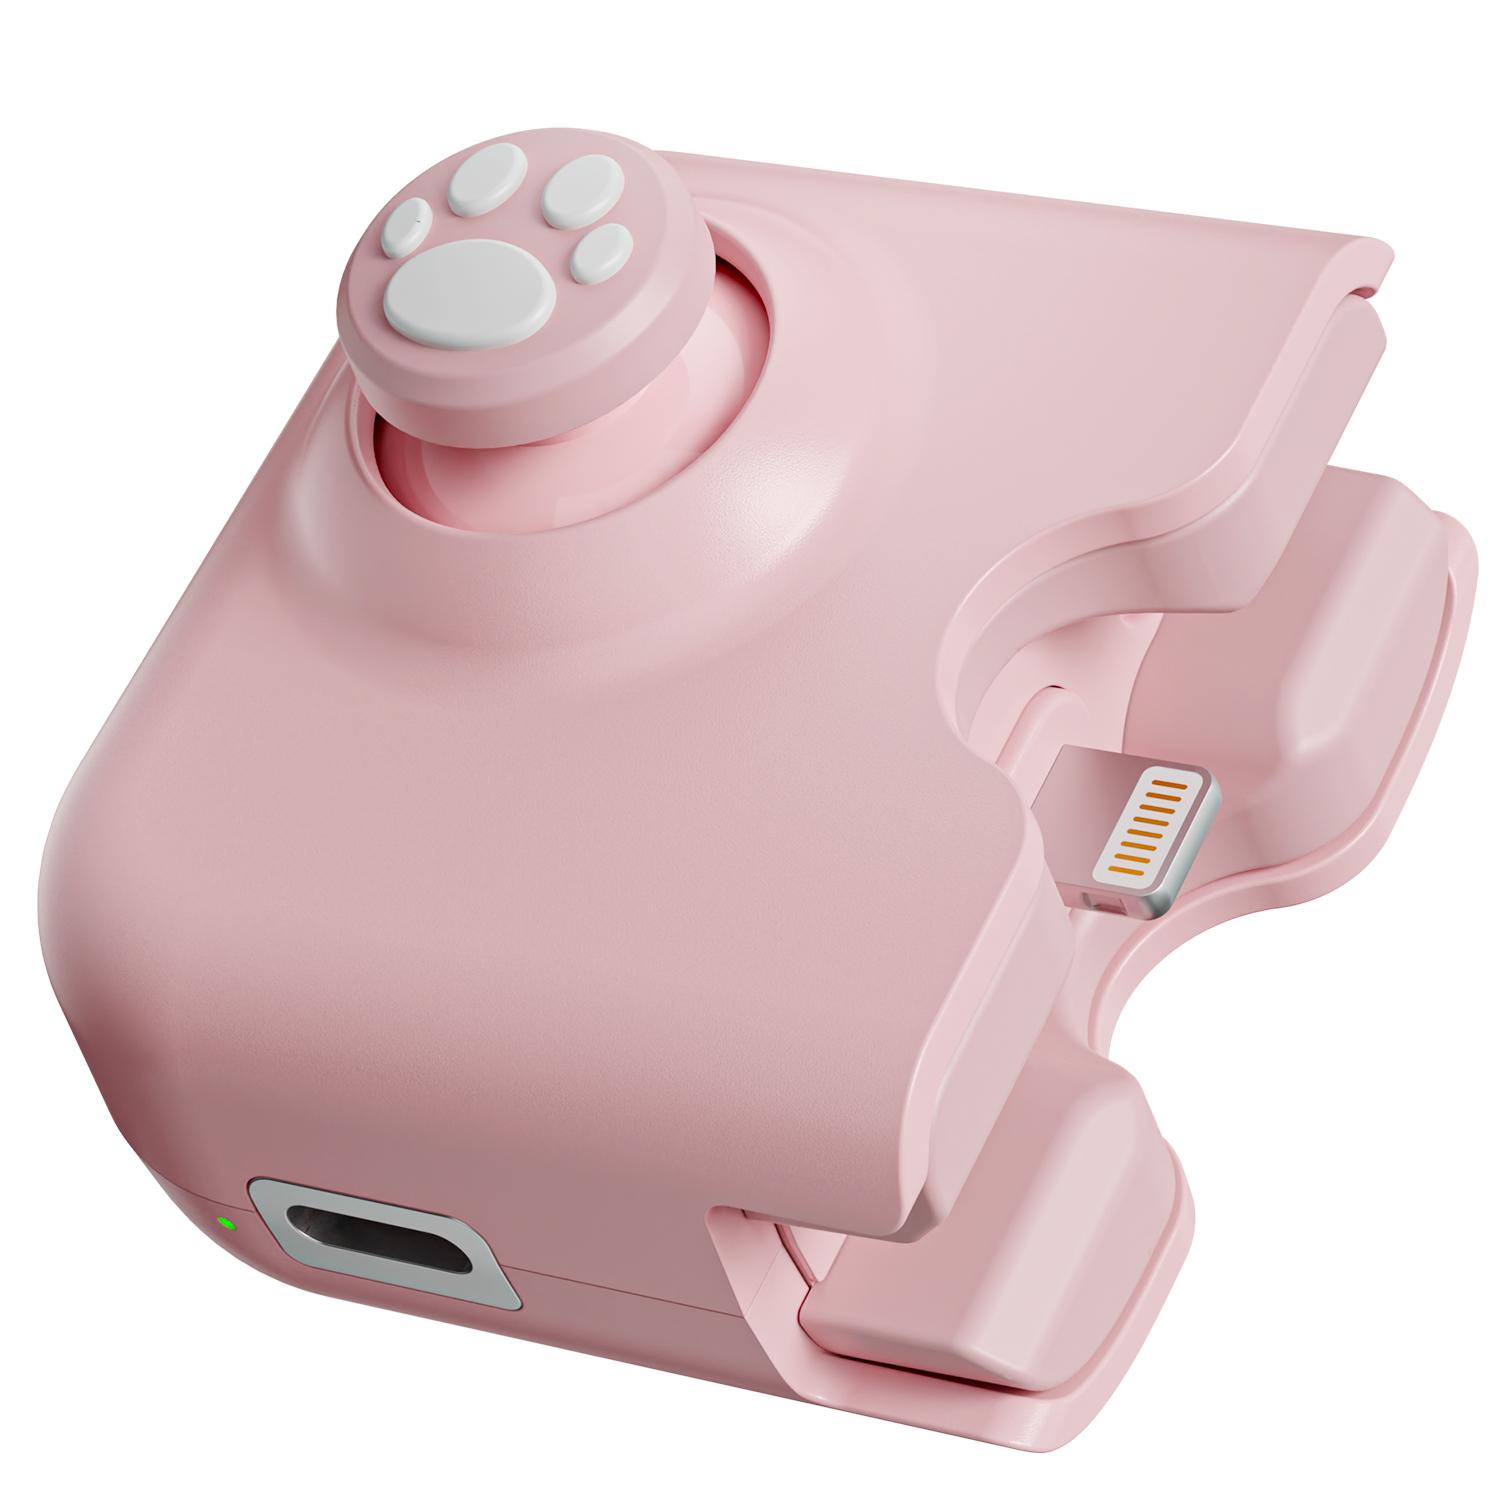 IFYOO Yao L1 PRO Mobile Game Controller – Pink